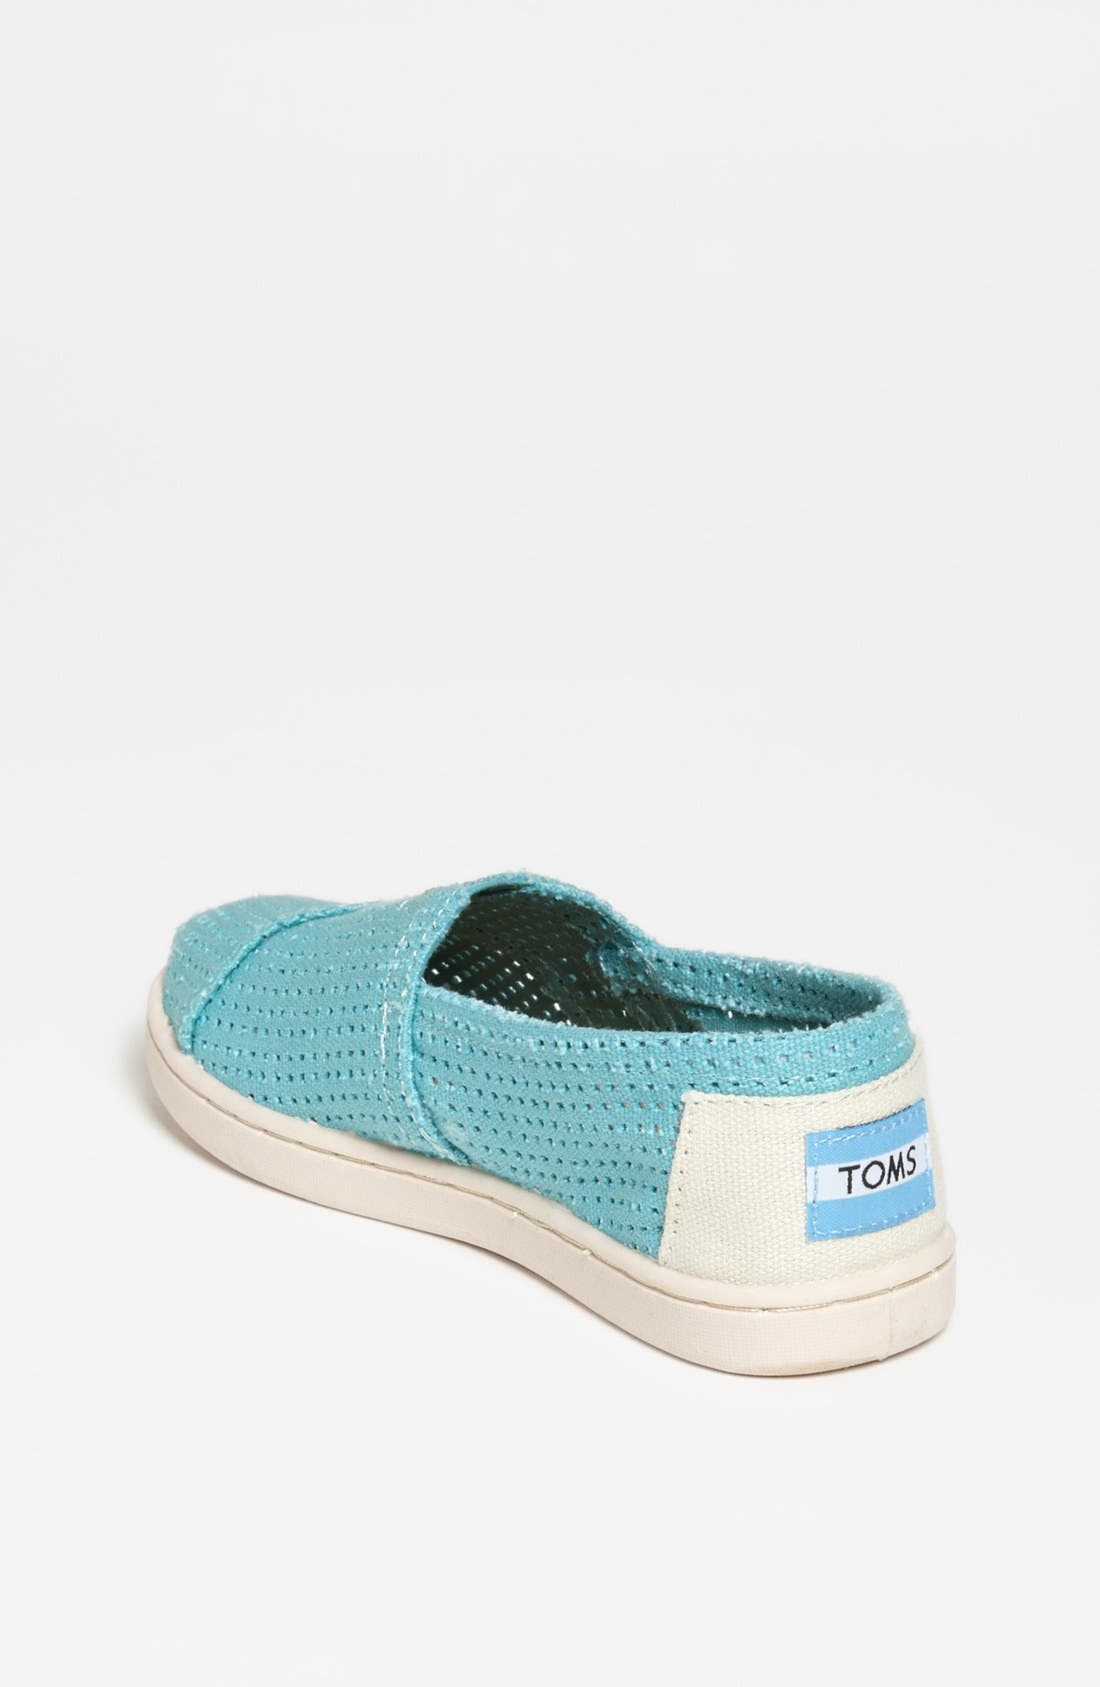 Alternate Image 2  - TOMS 'Classic - Youth' Perforated Slip-On (Toddler, Little Kid & Big Kid)